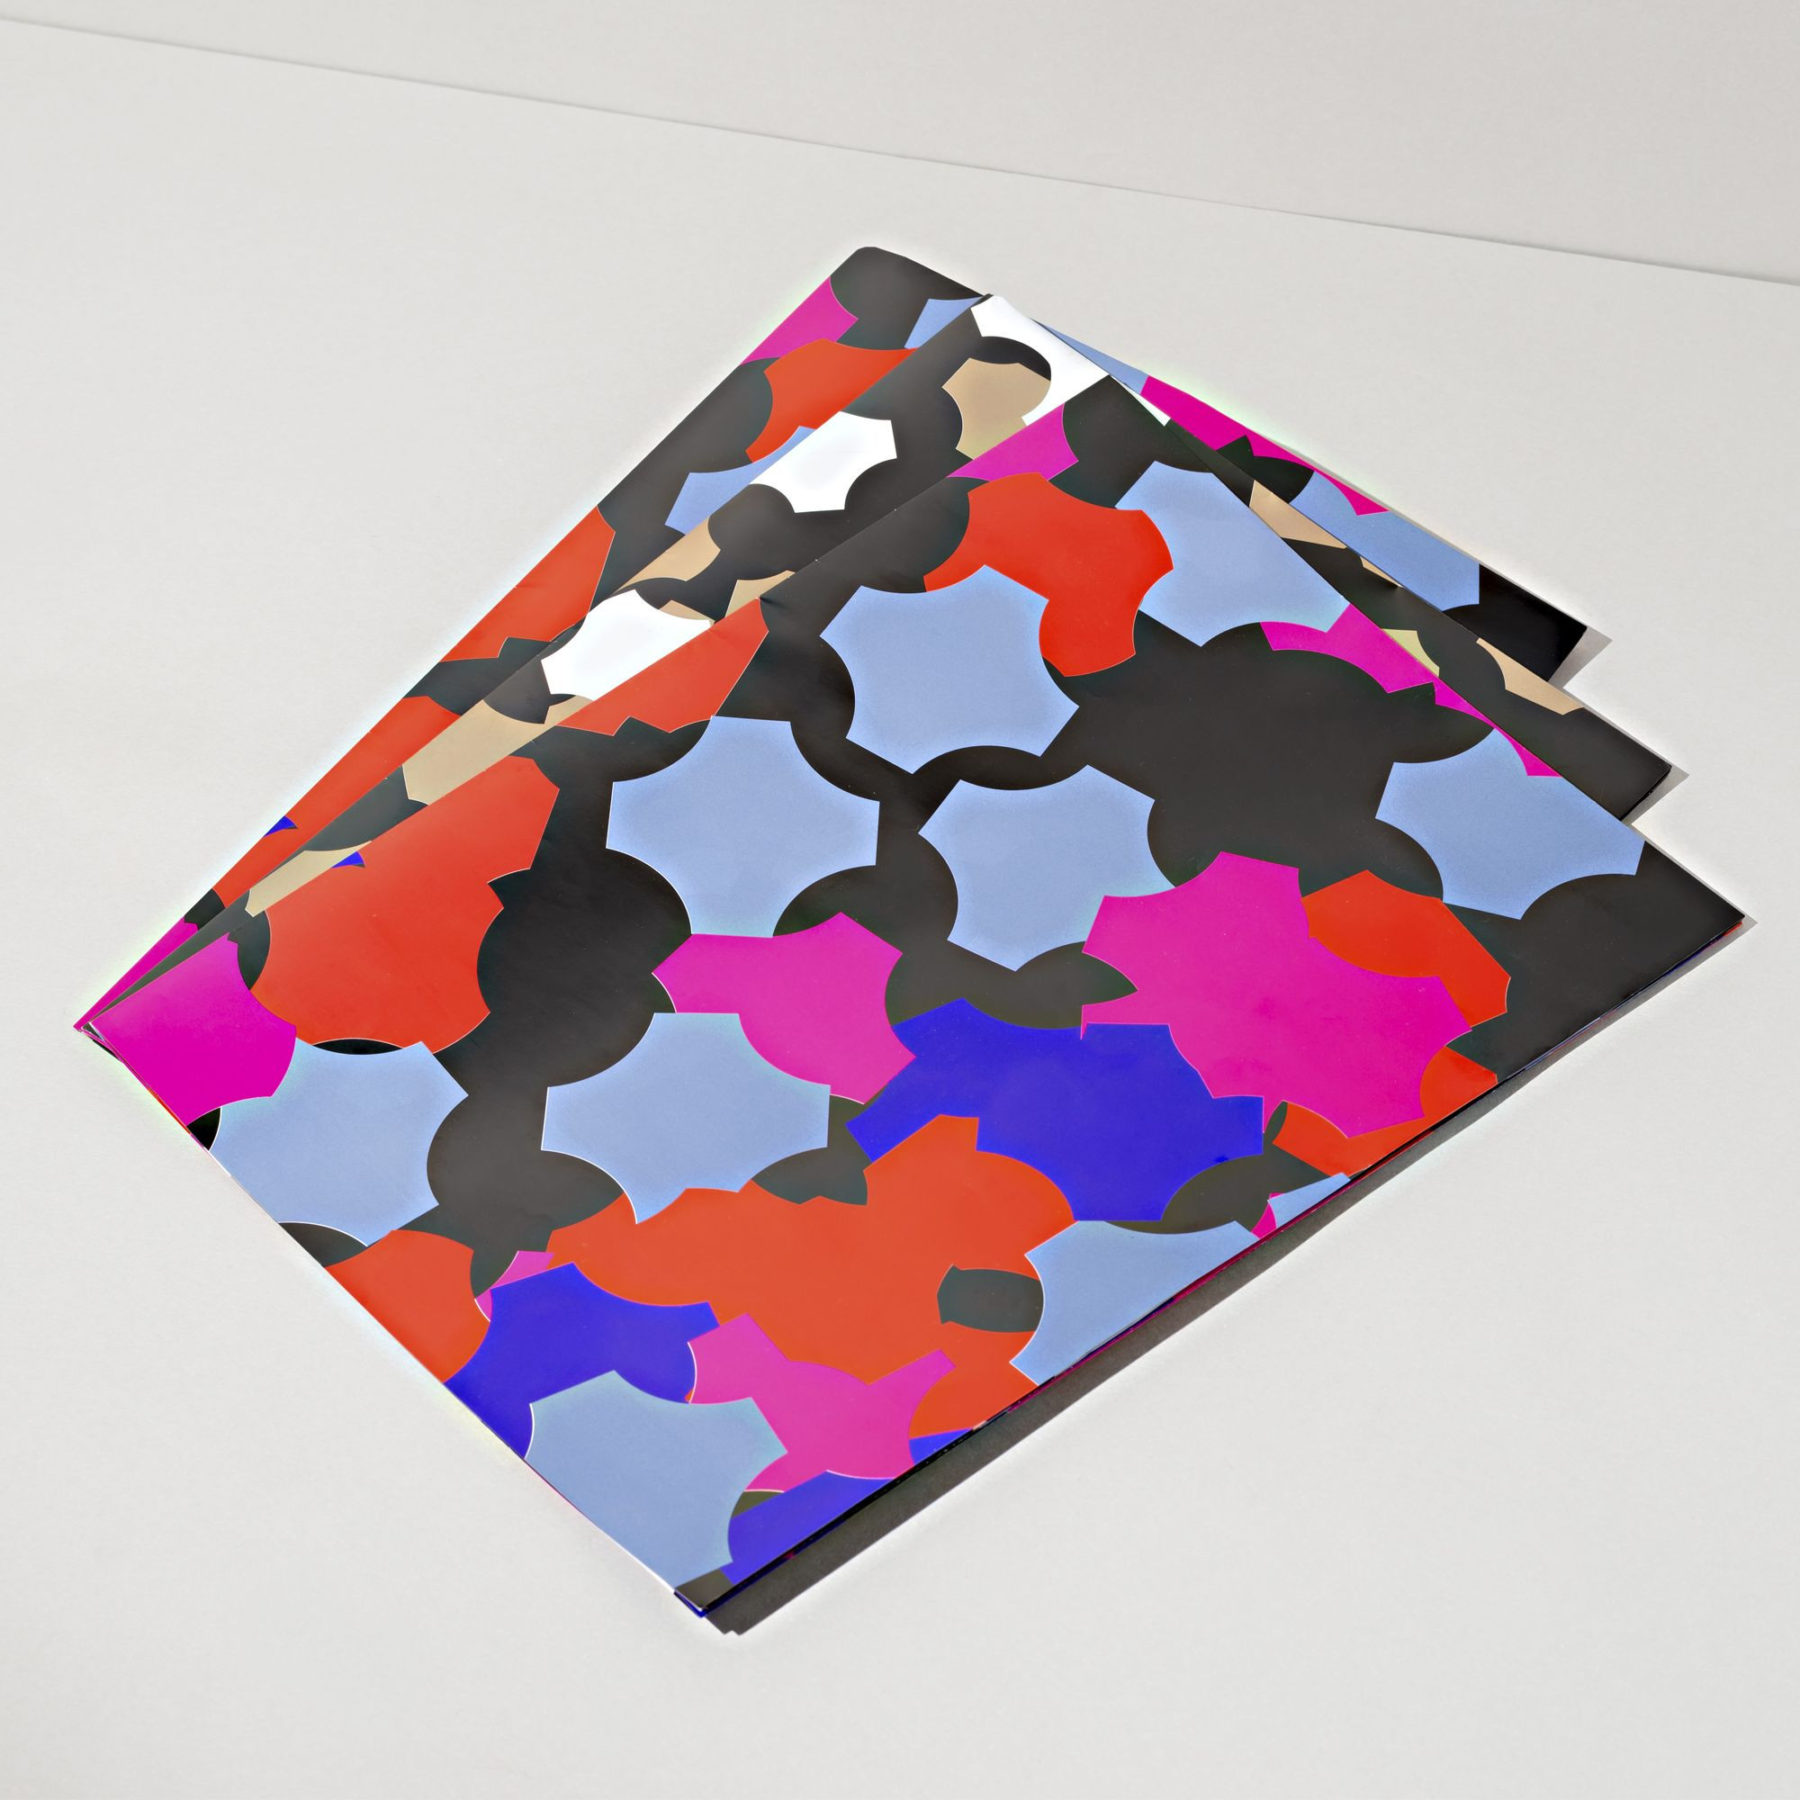 positional wrappingpaper